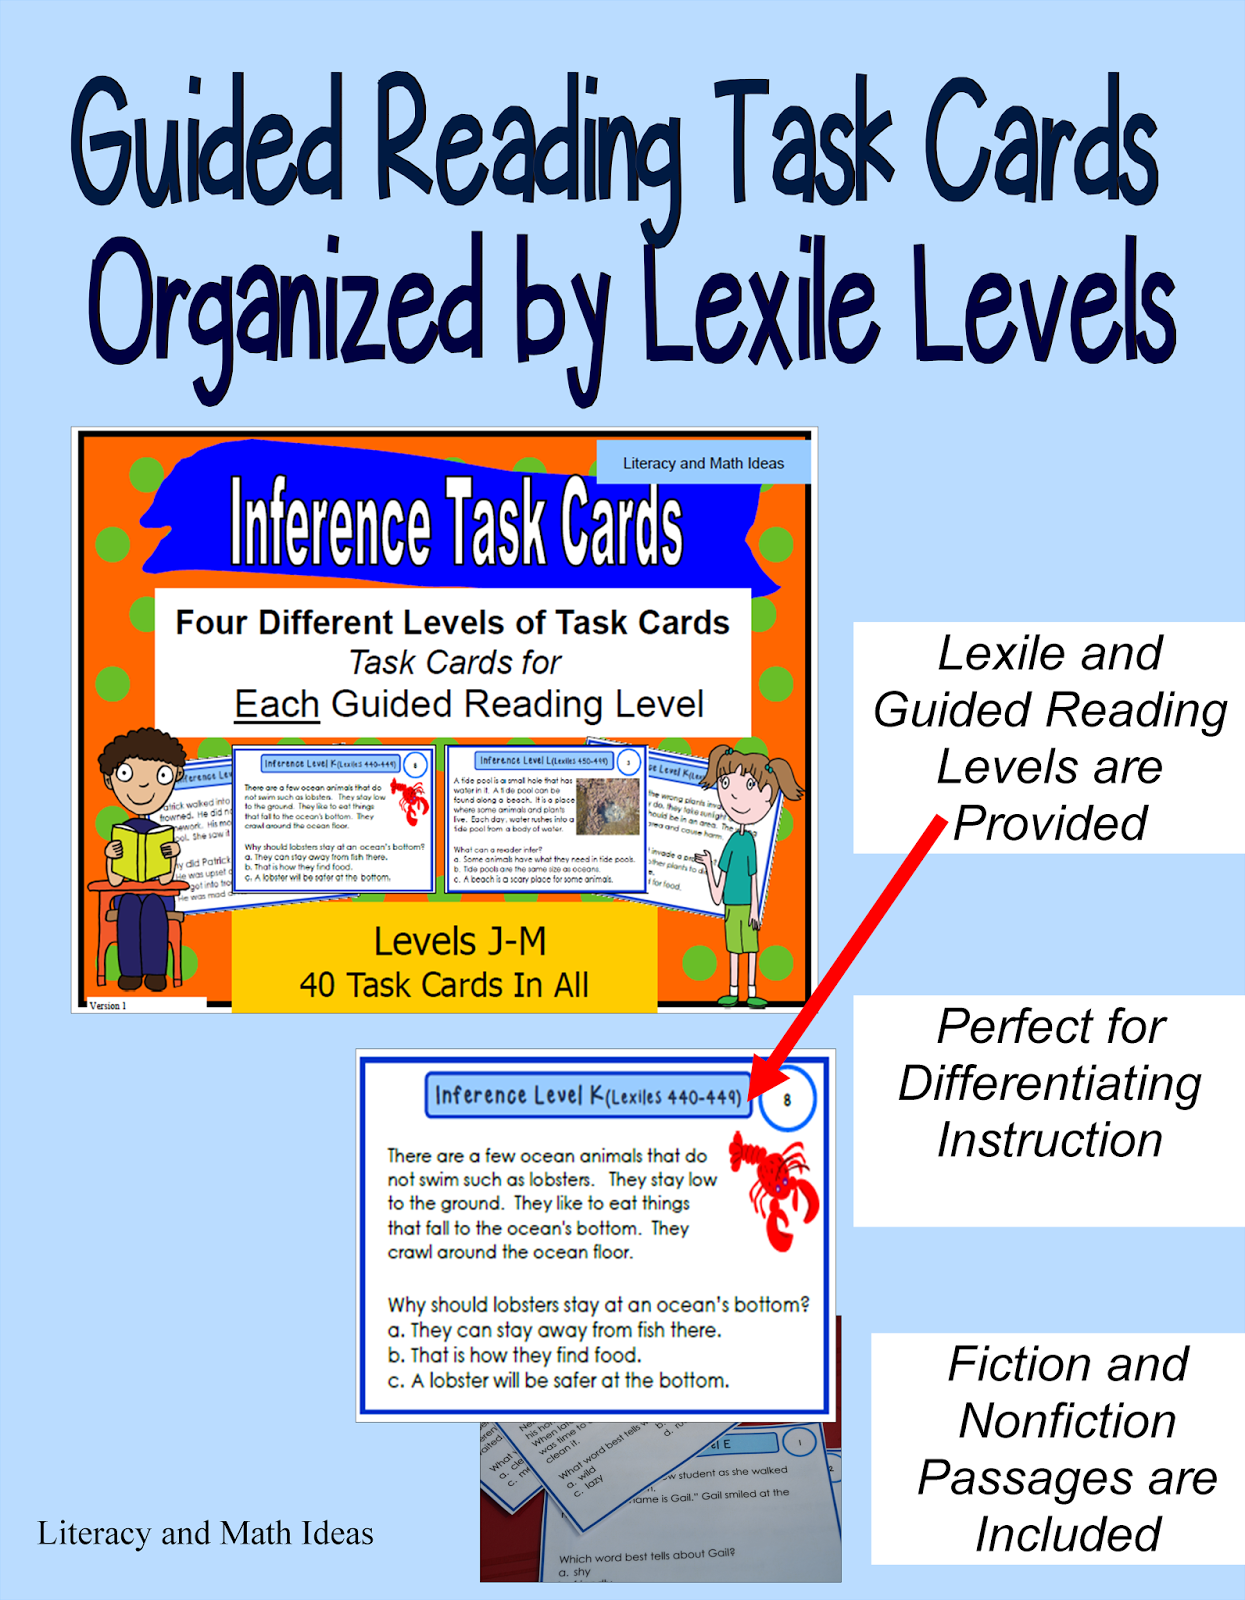 lexile level compared to guided reading level